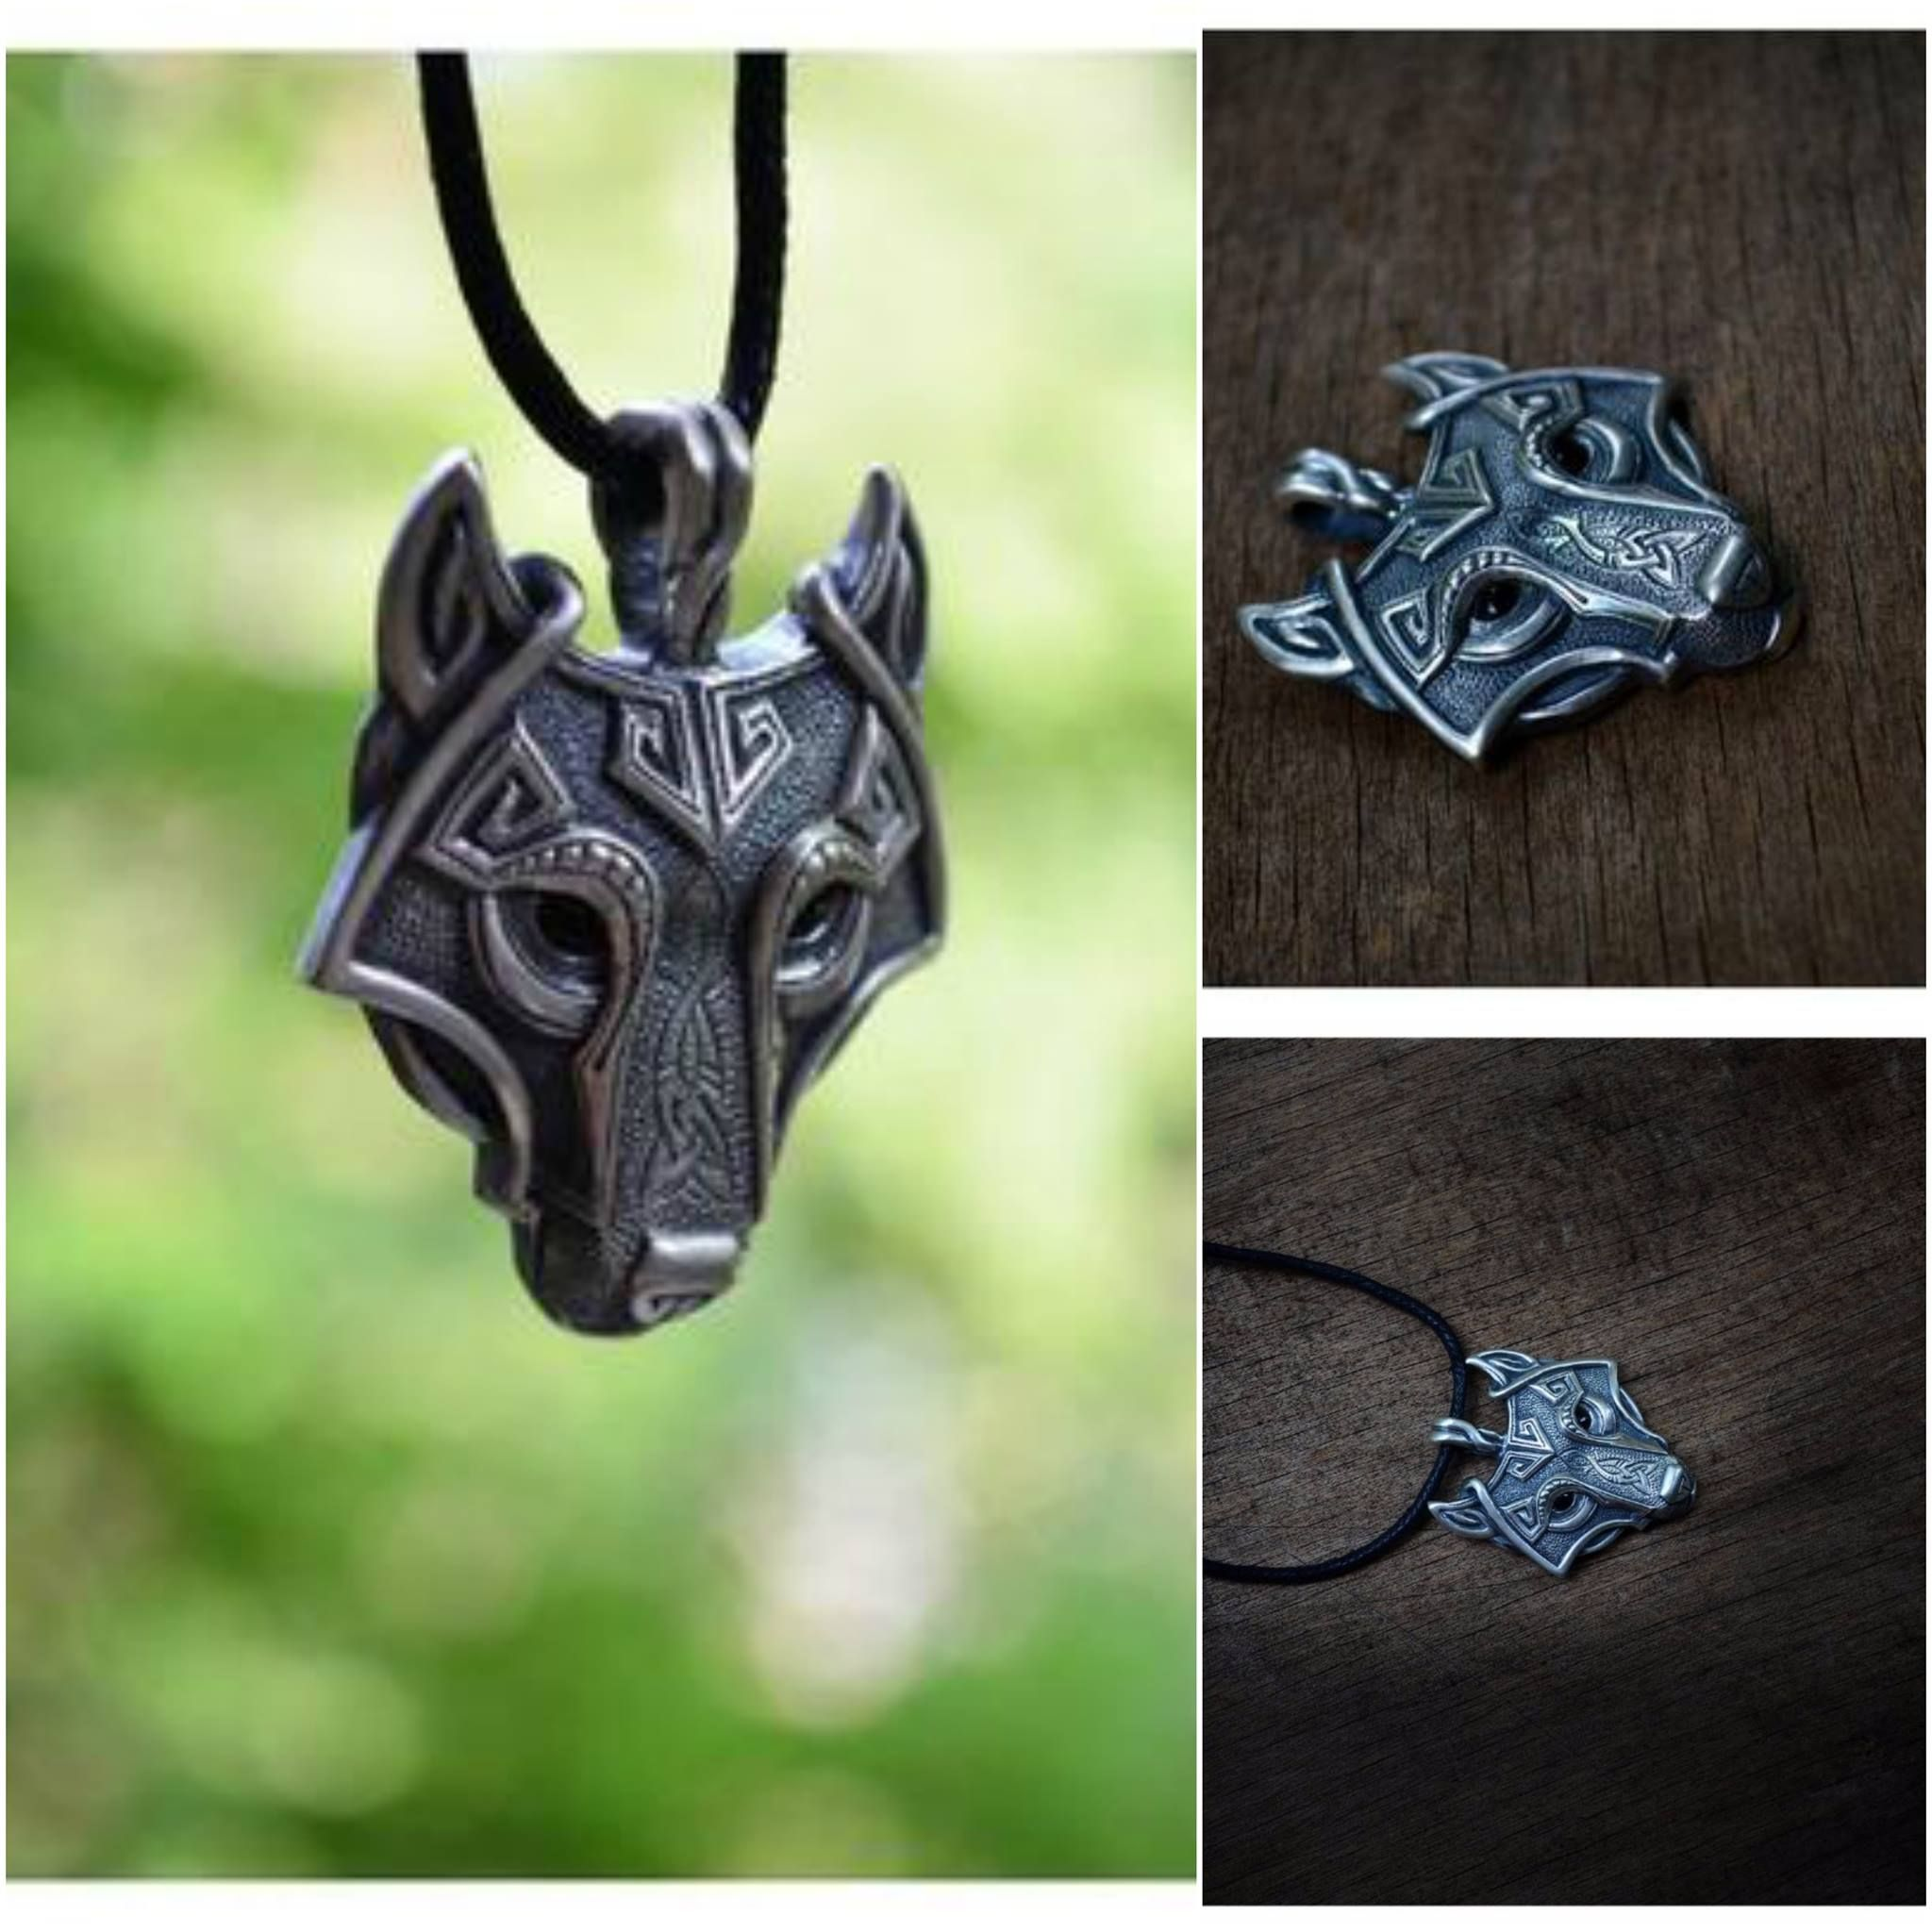 color archangel jewelry shield protection wolf st pendant necklace me men getsubject head item amulet saint michael protect aeproduct